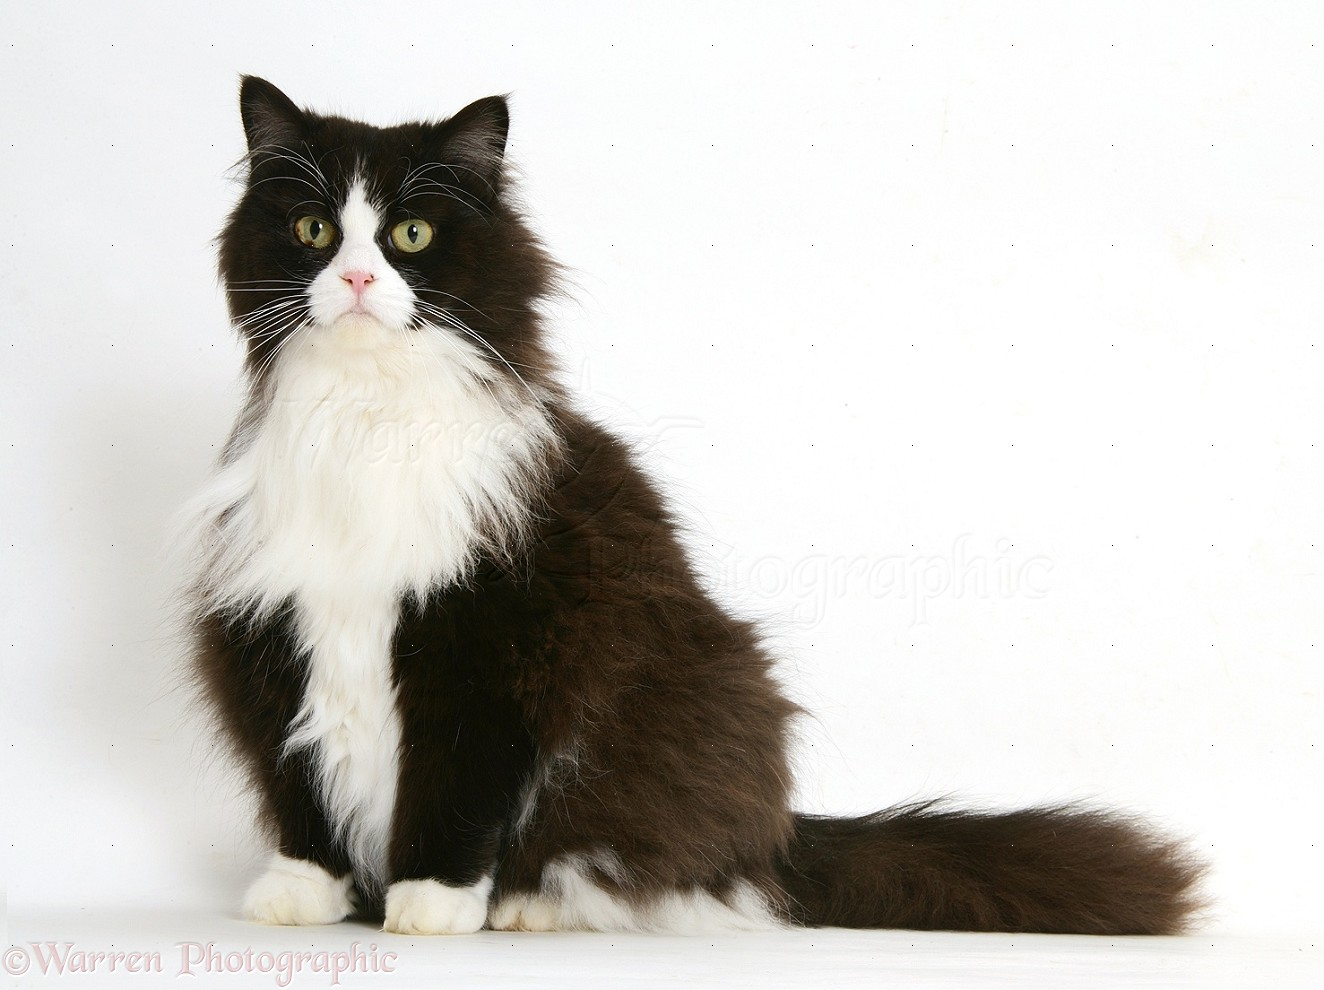 50 Cute Black and White Persian Cat